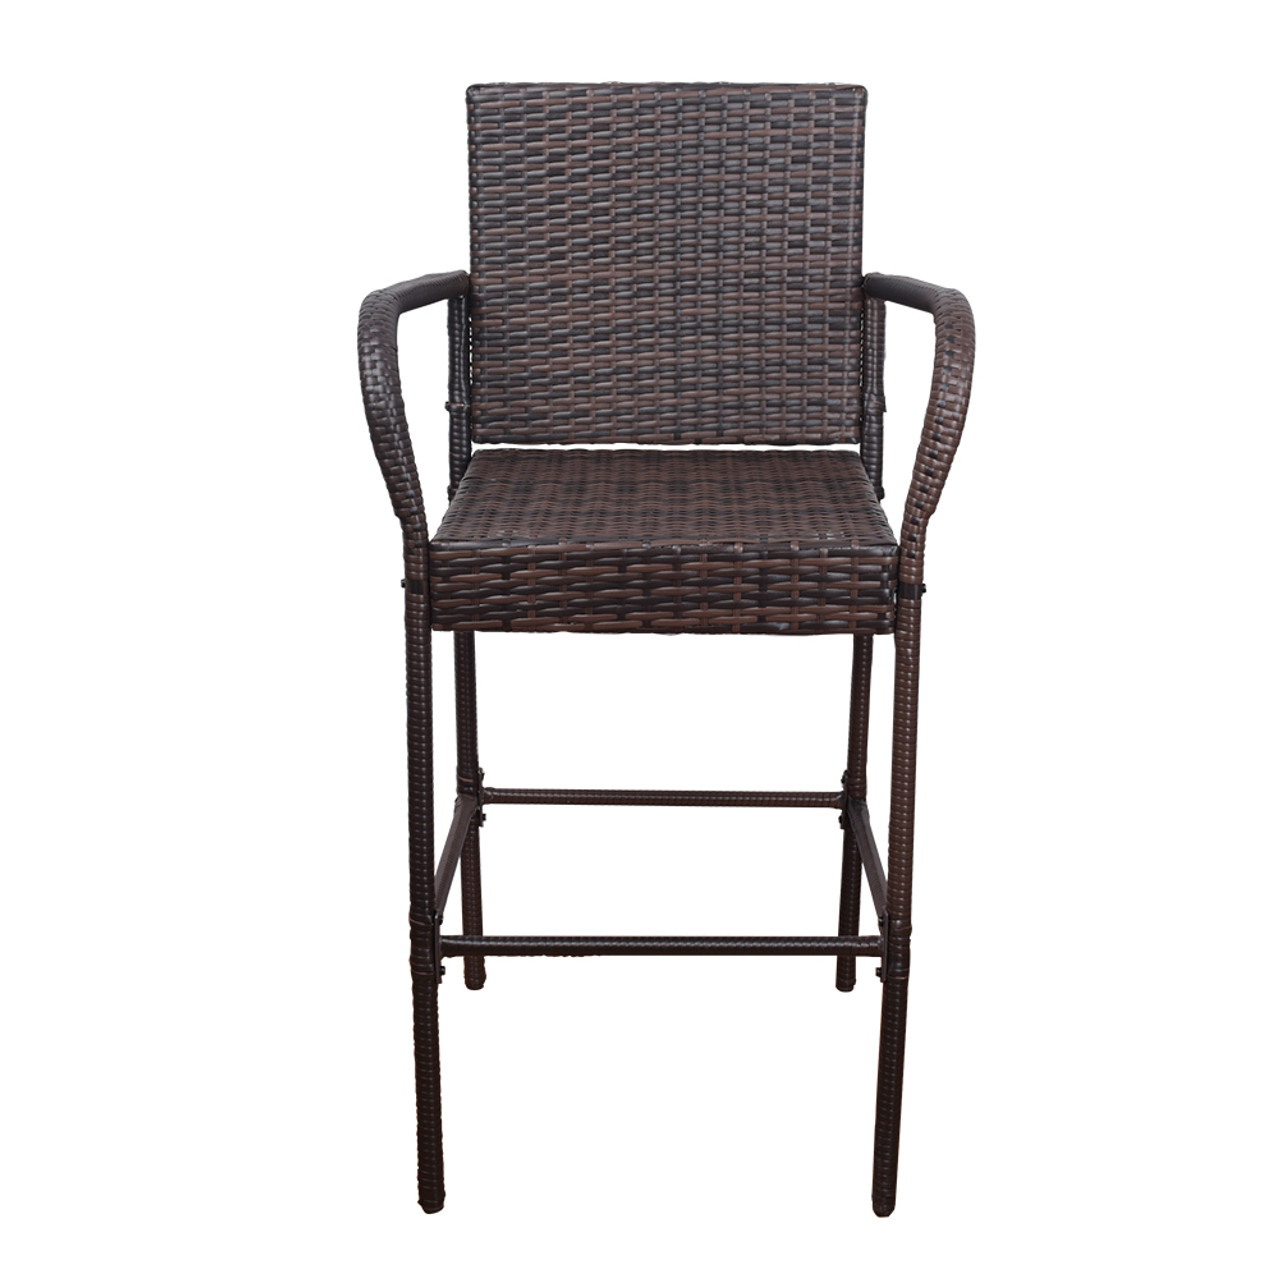 2 Pcs All Weather Patio Furniture Brown Wicker Barstool With Cushions